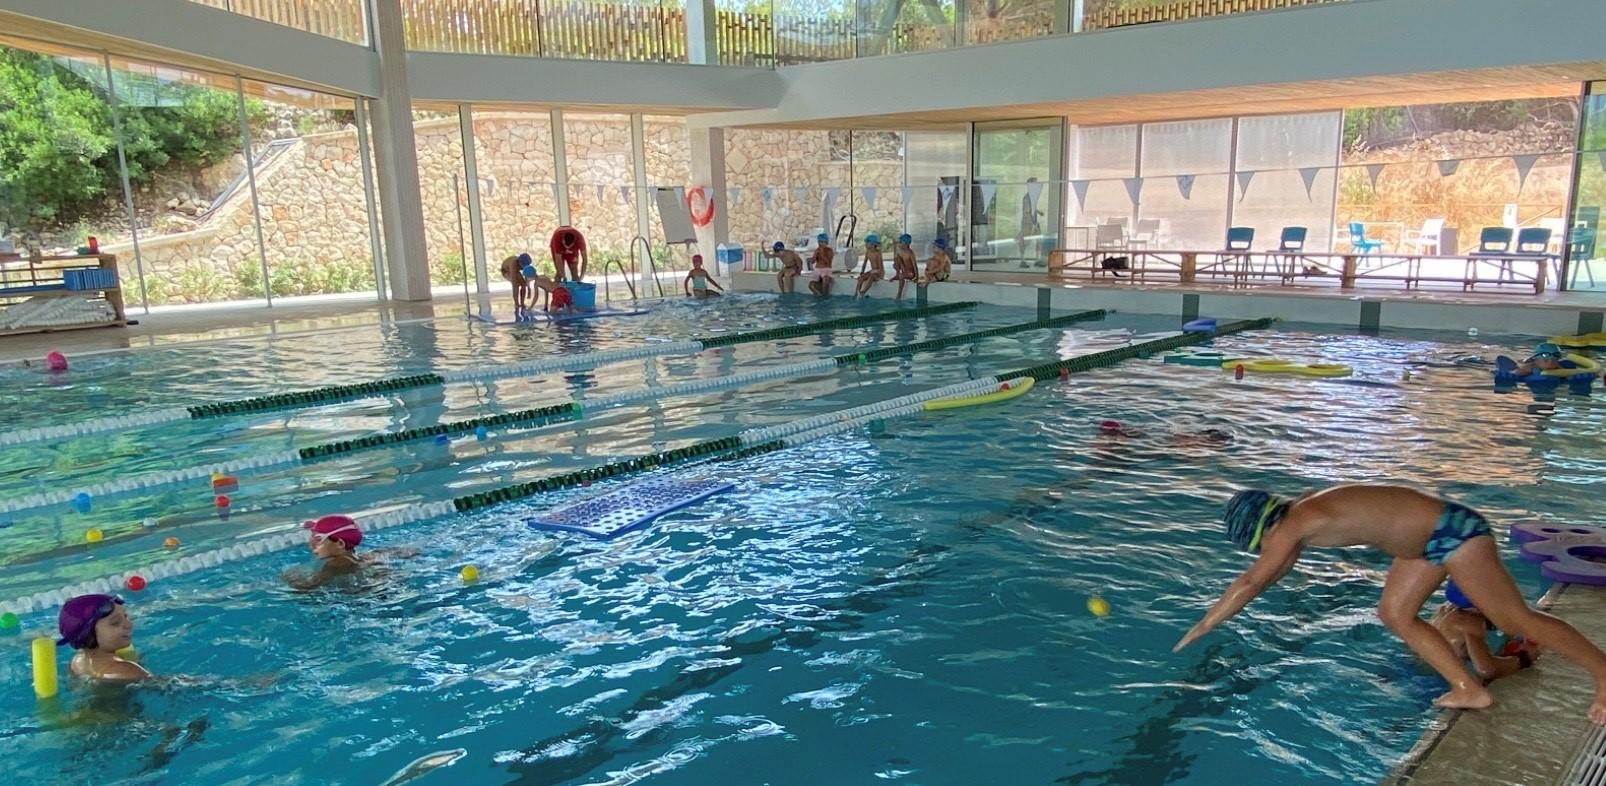 The older children ( 6 years + ) were based on the Queen's College sports centre site